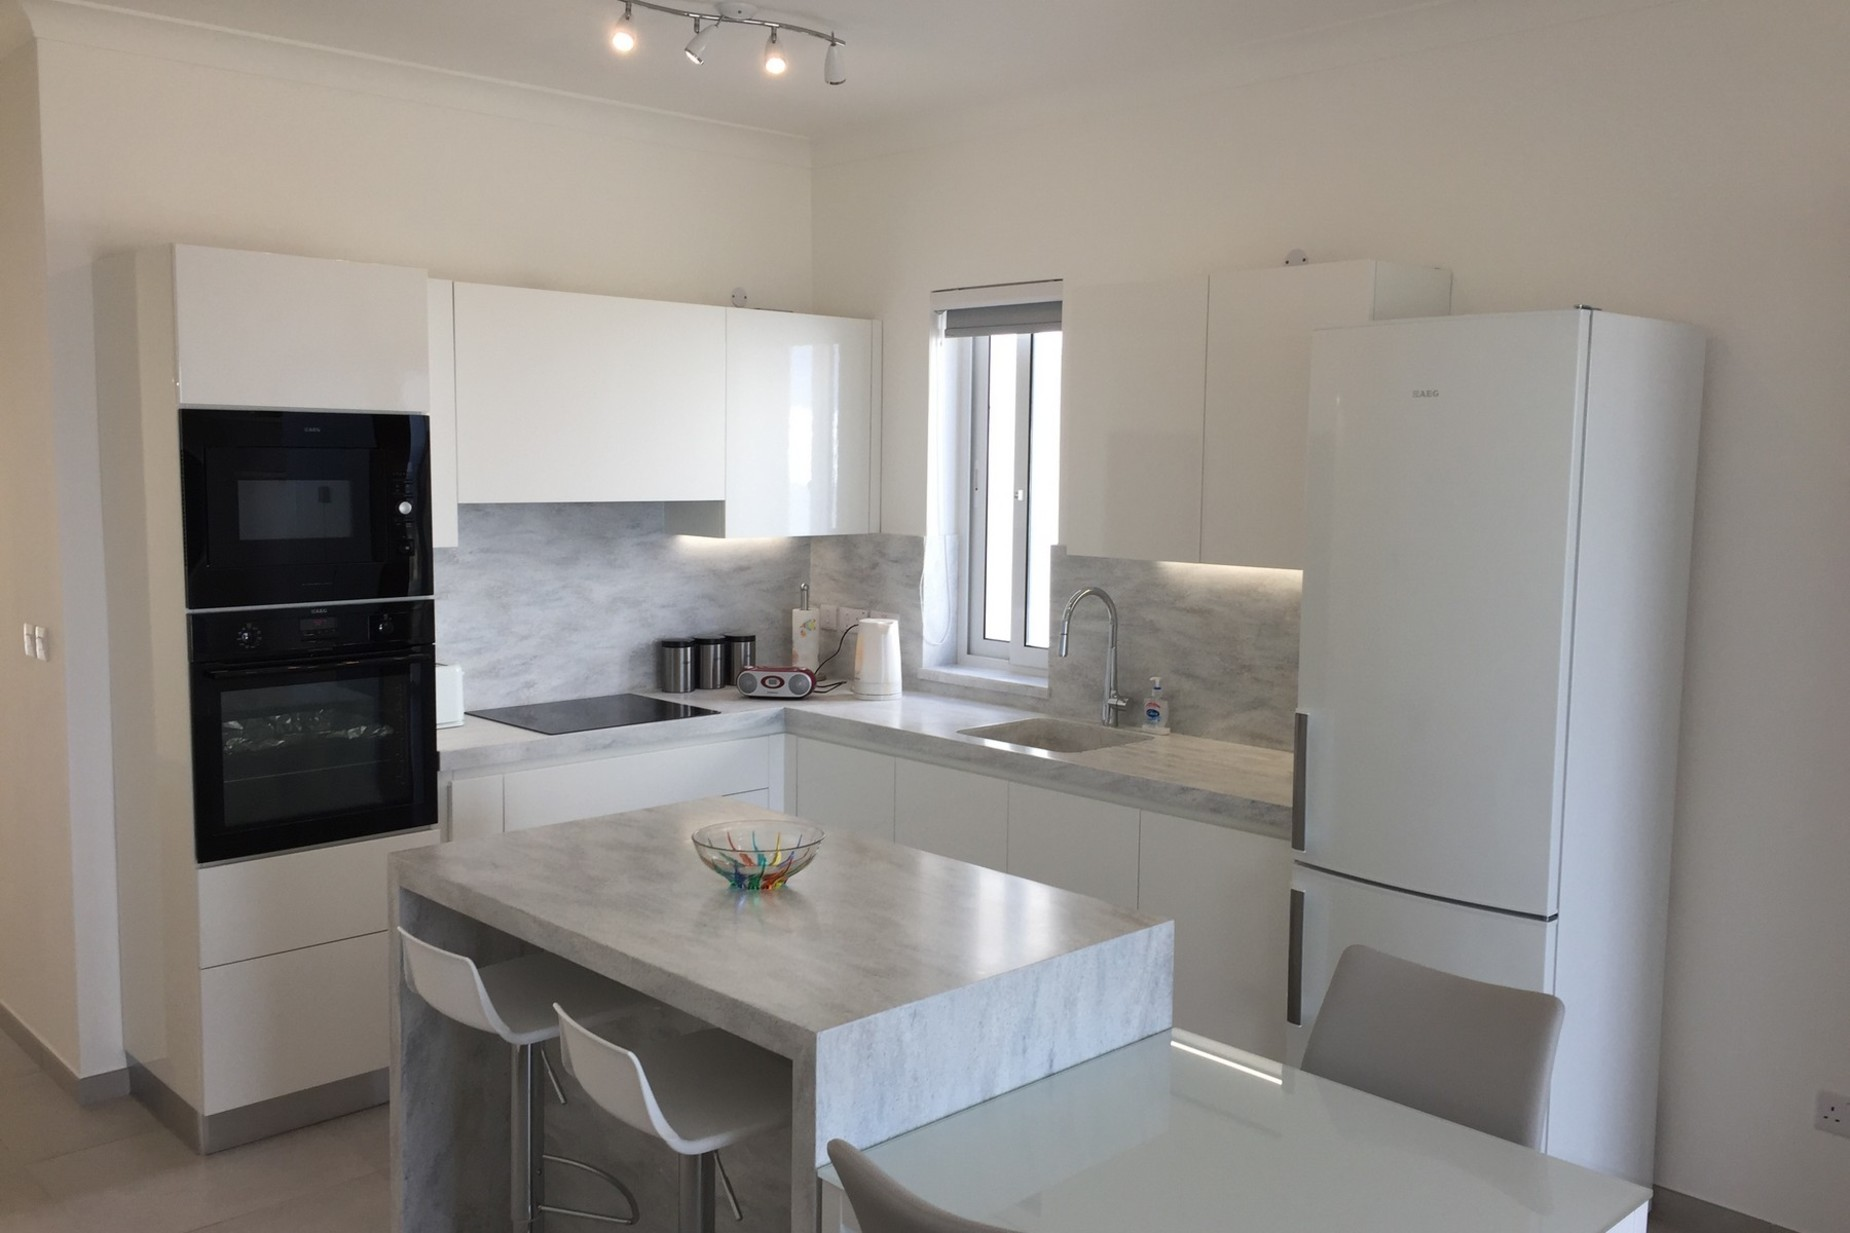 1 bed Penthouse For Rent in Ibragg, Ibragg - thumb 2